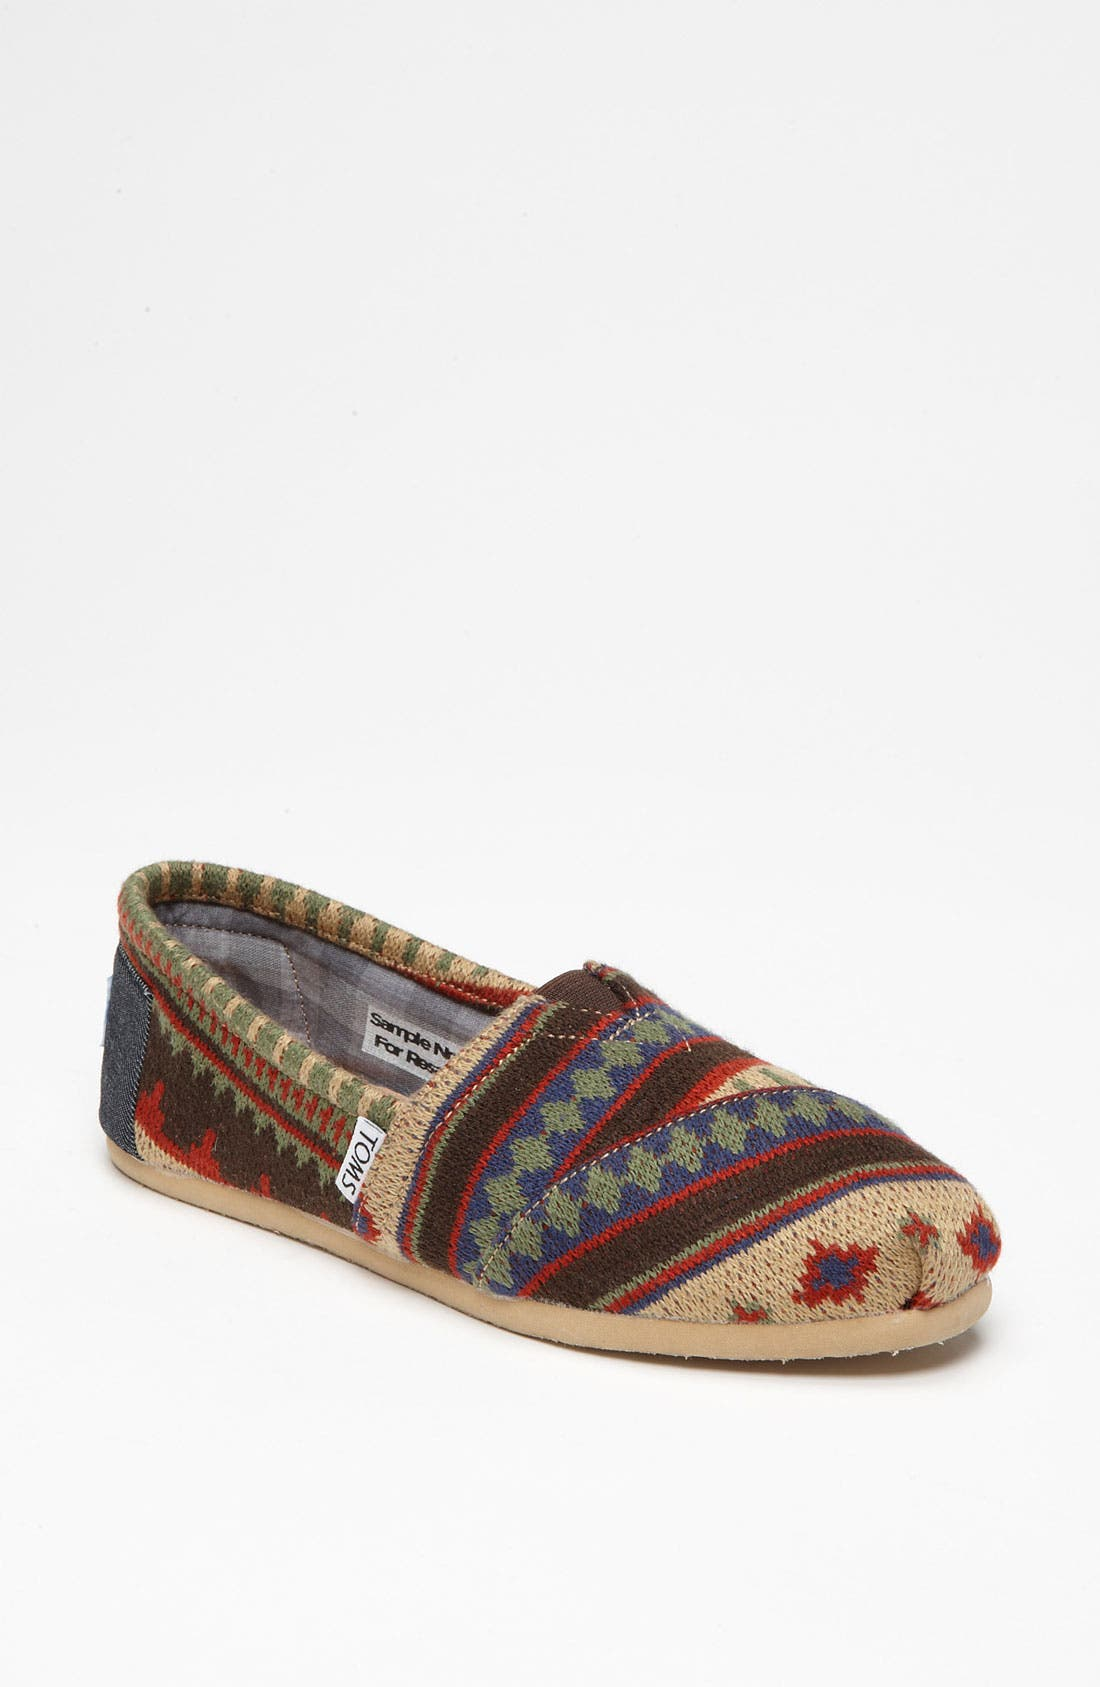 Alternate Image 1 Selected - TOMS 'Classic - Kilim' Slip-On